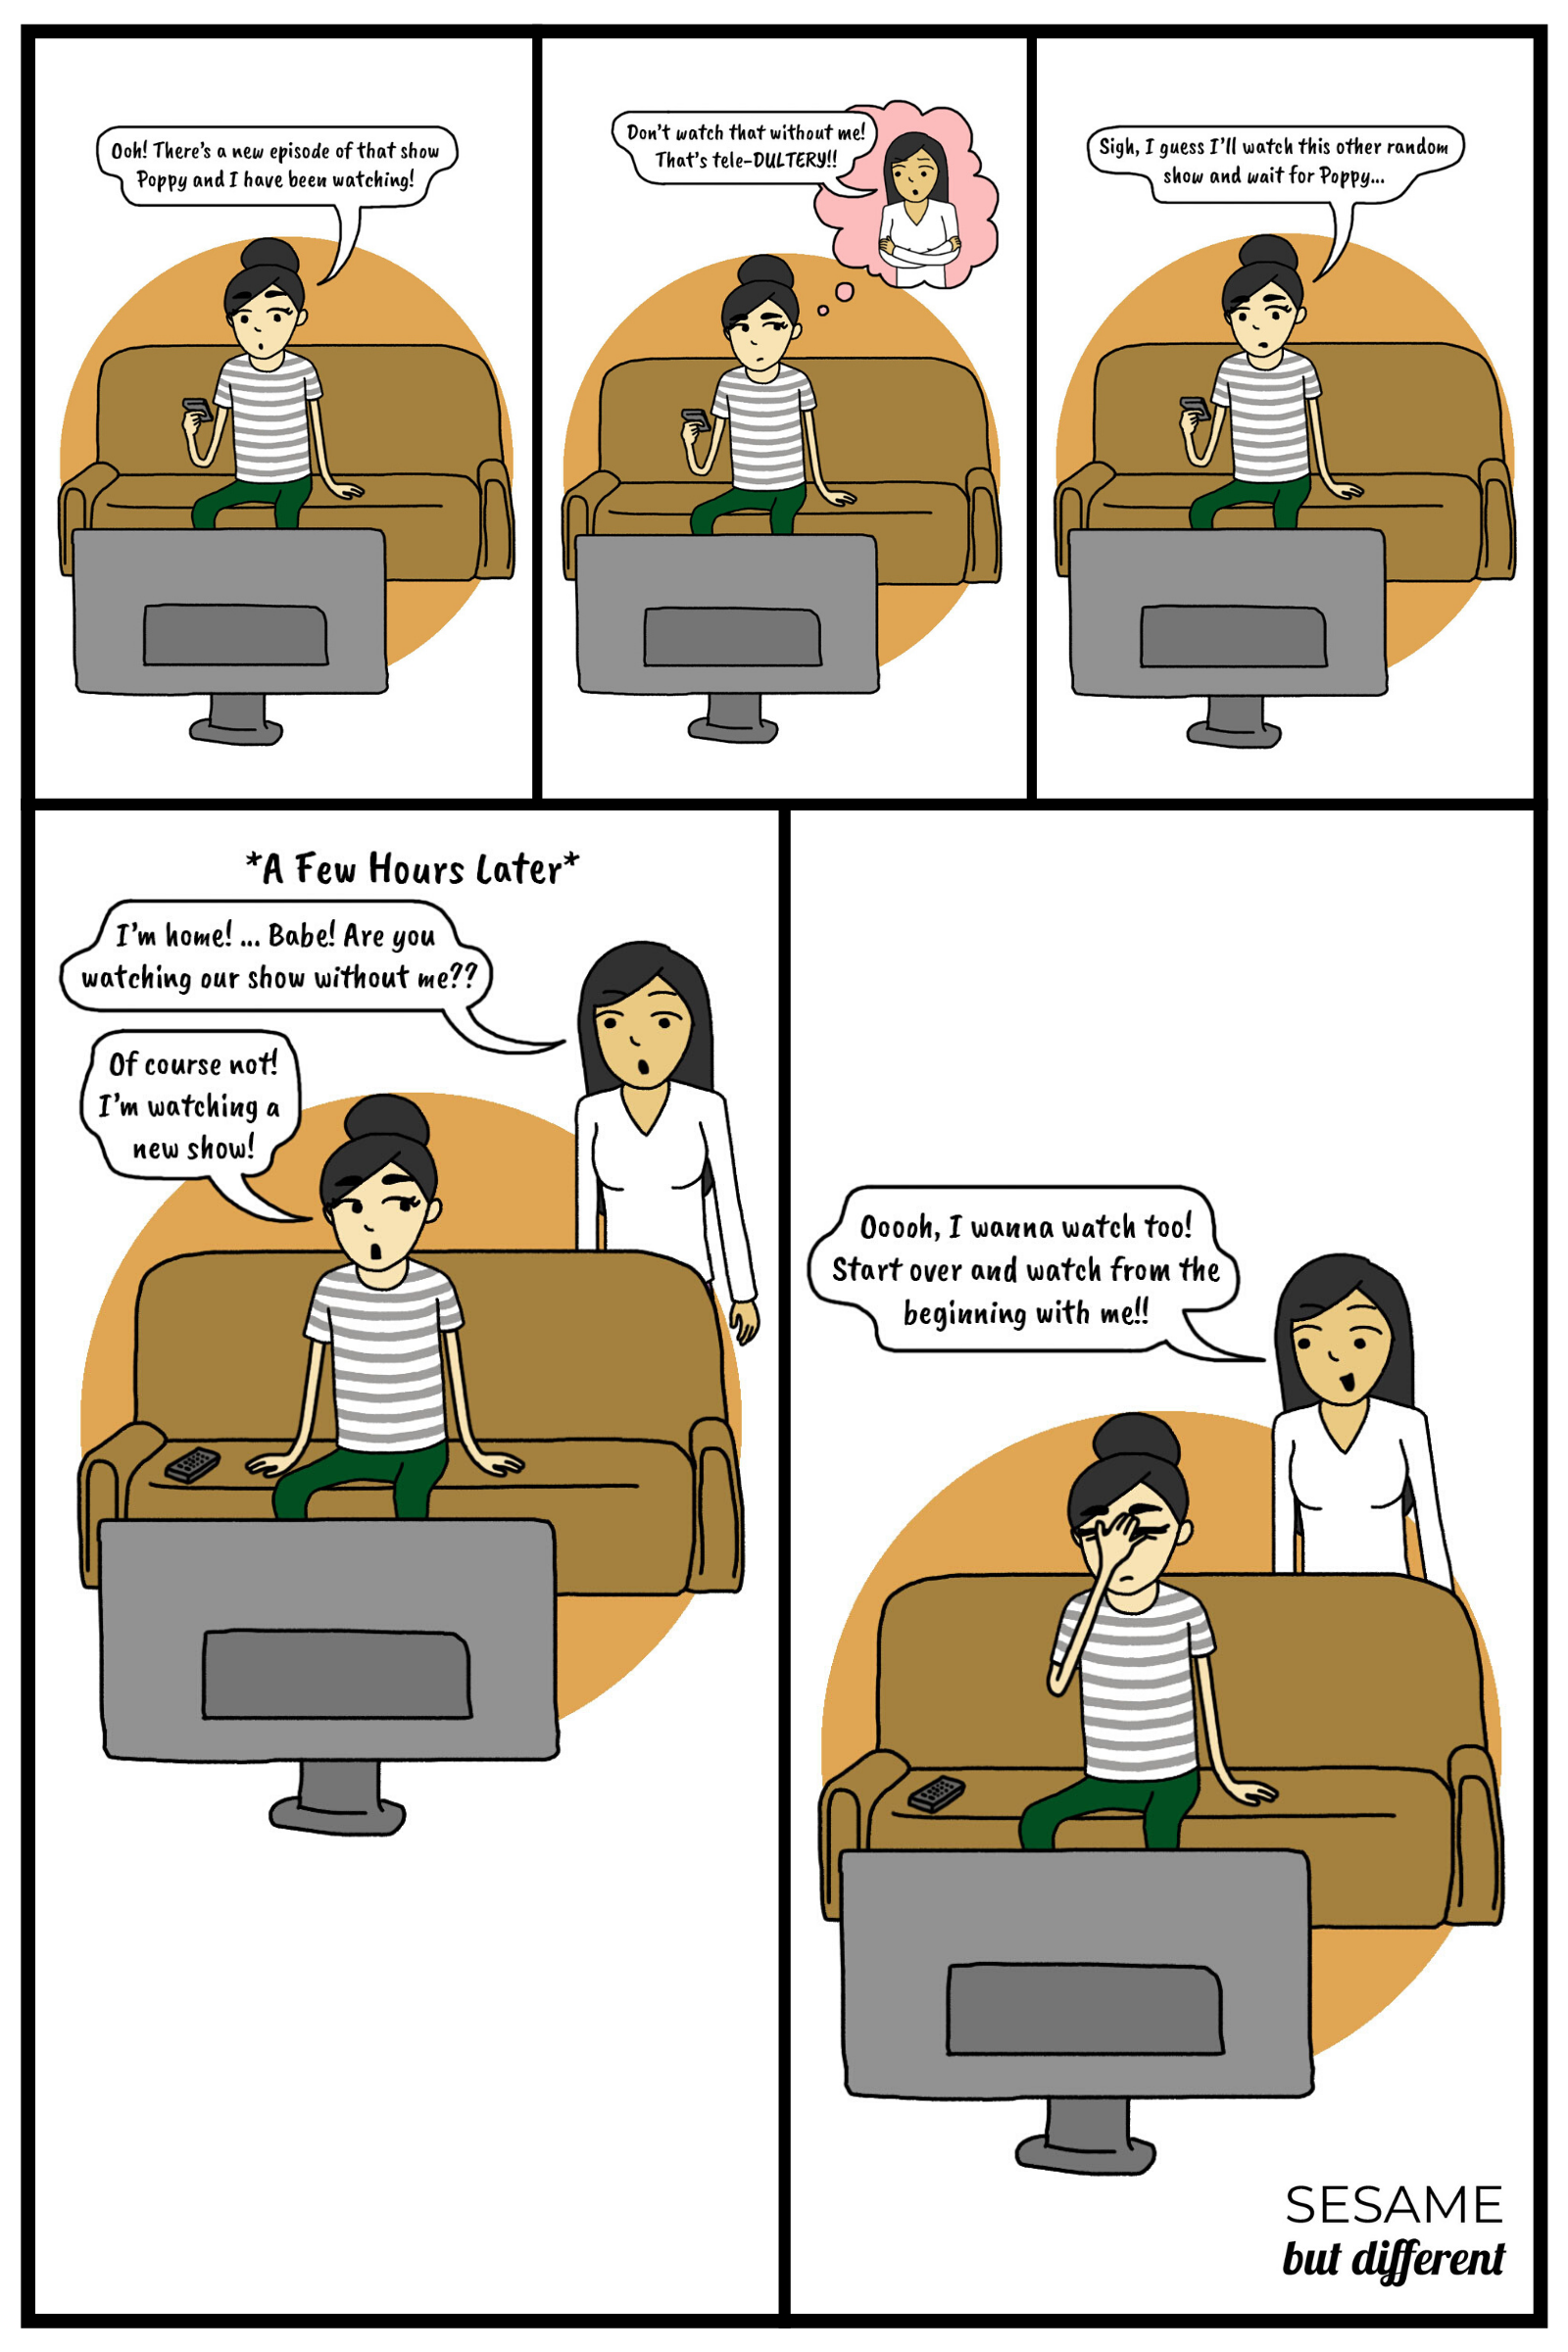 Sesame-But-Different-Teledultery-TV-show-adultery-with-my-lesbian-girlfriend-funny-lesbian-webcomic